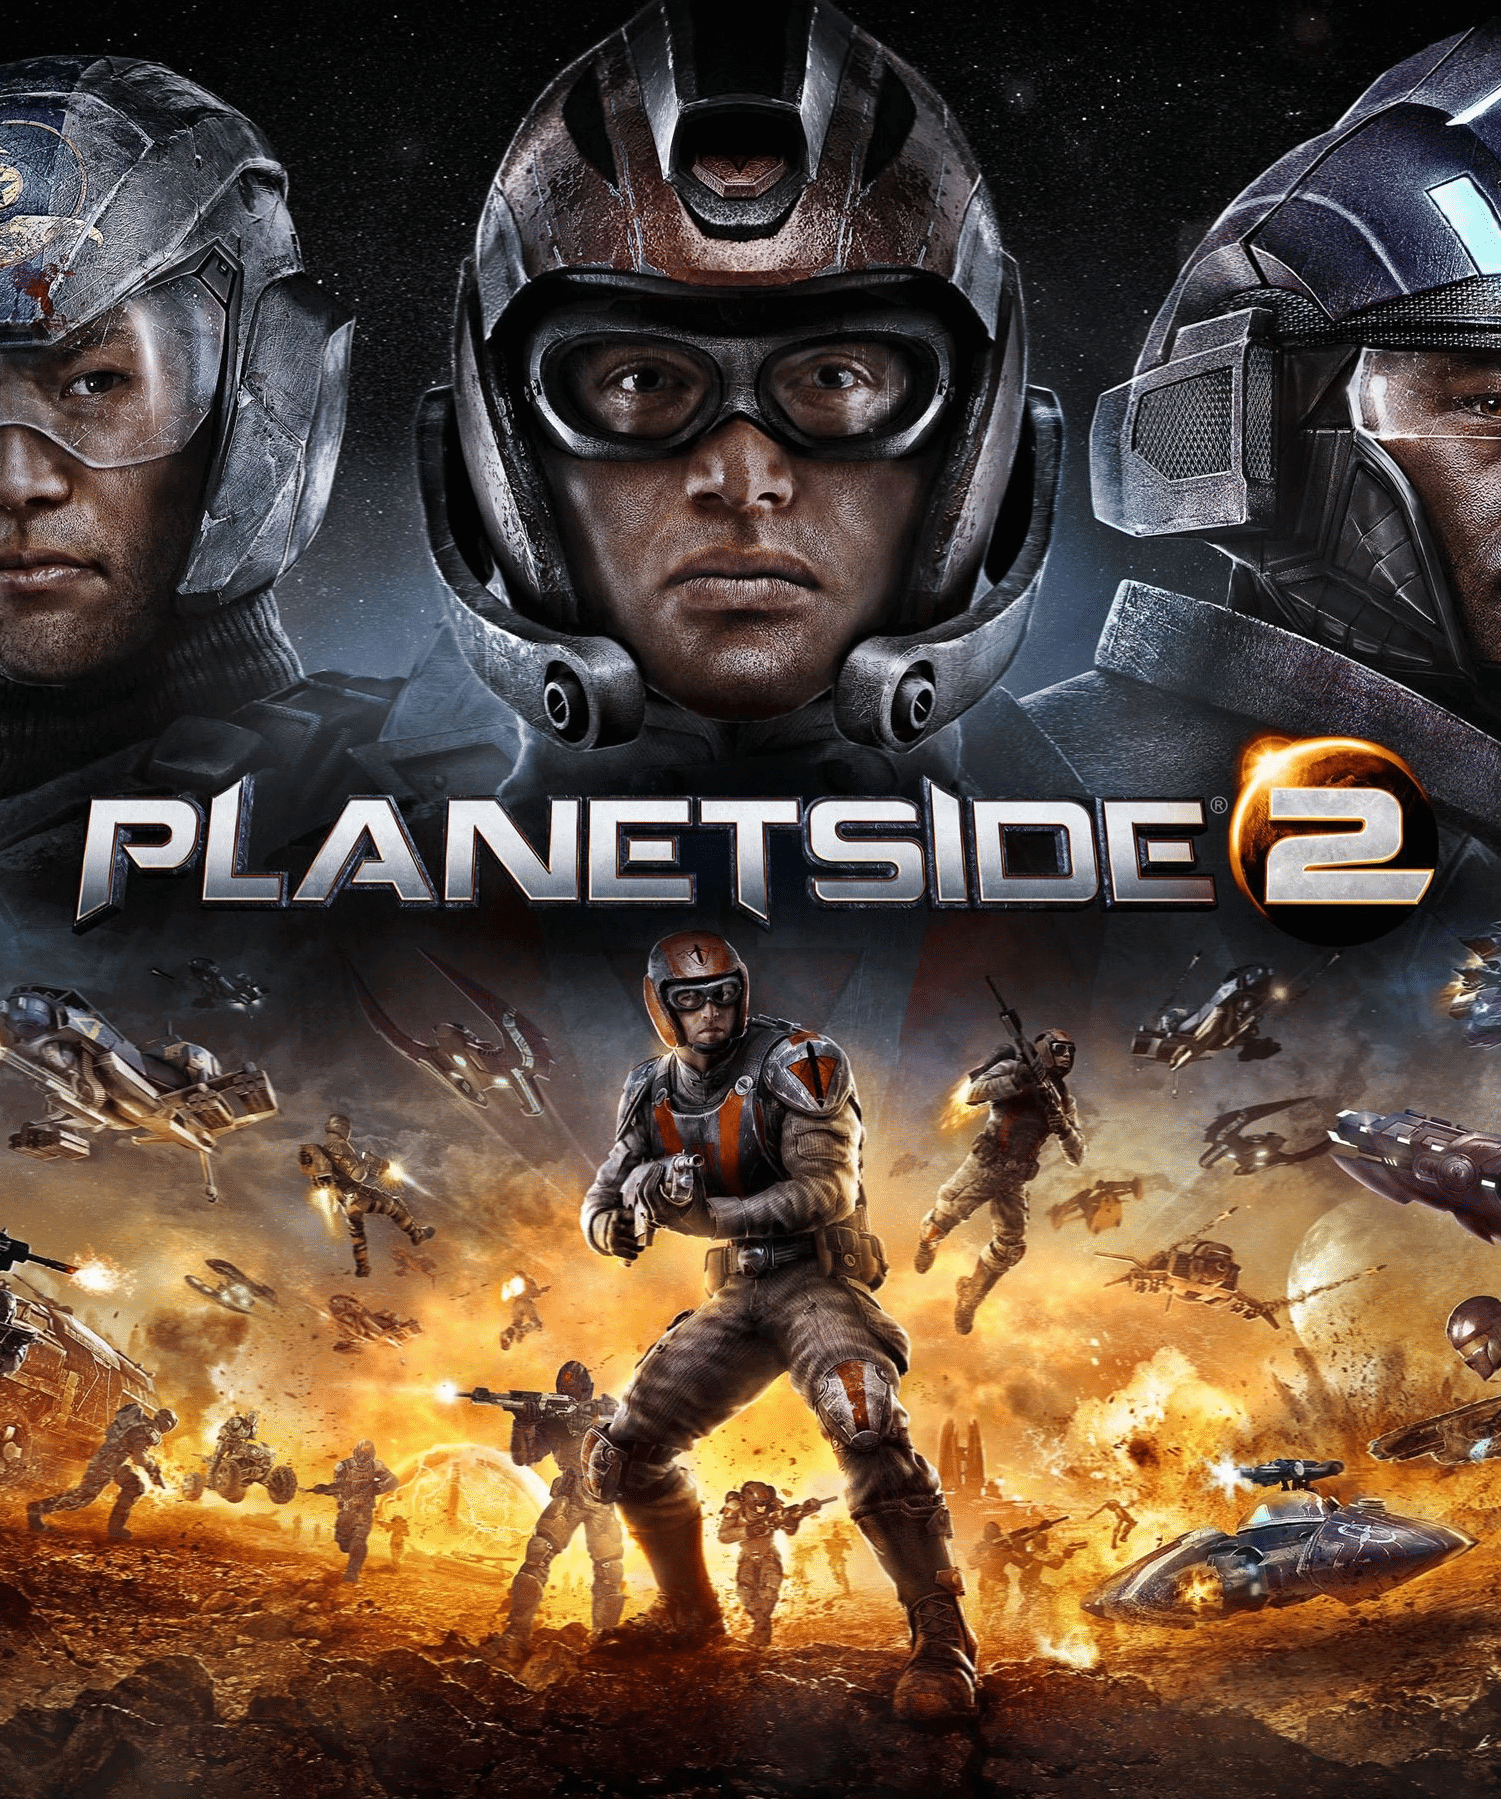 Planetside 2 Review - A Massively Fun Online FPS ...